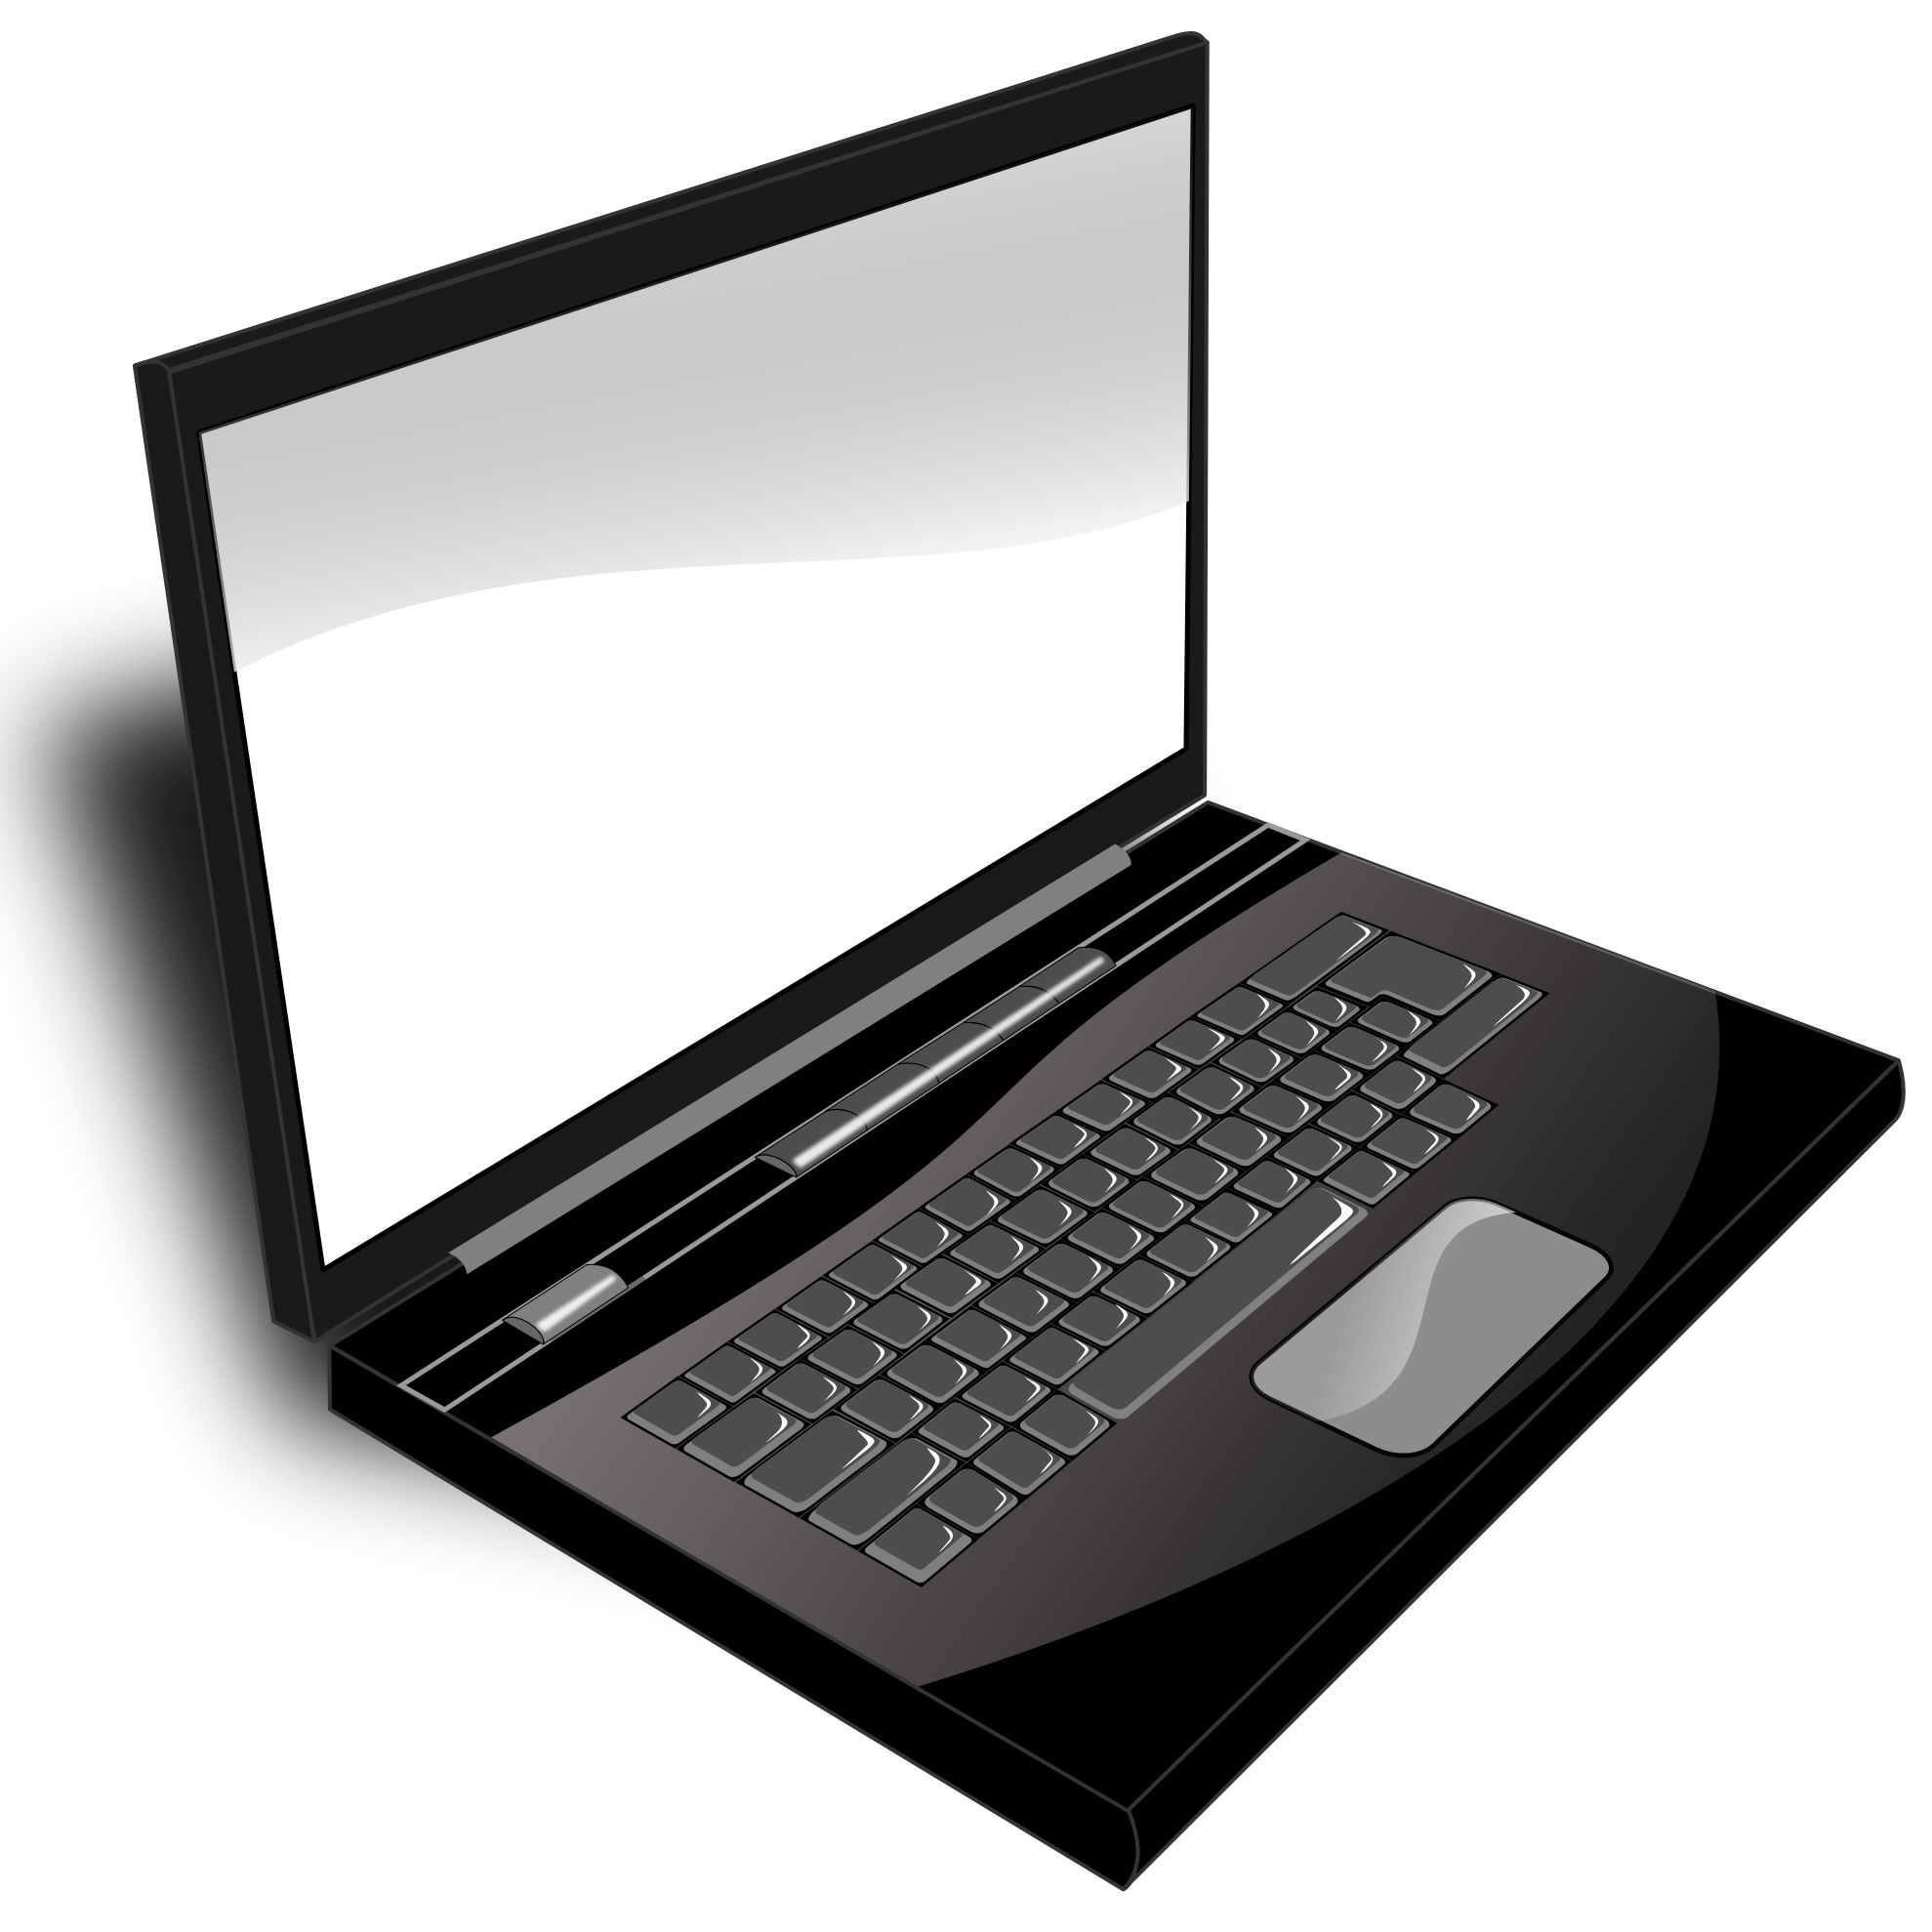 Laptop cute clipart black and white simple picture transparent stock Free Mac Cliparts, Download Free Clip Art, Free Clip Art on Clipart ... picture transparent stock